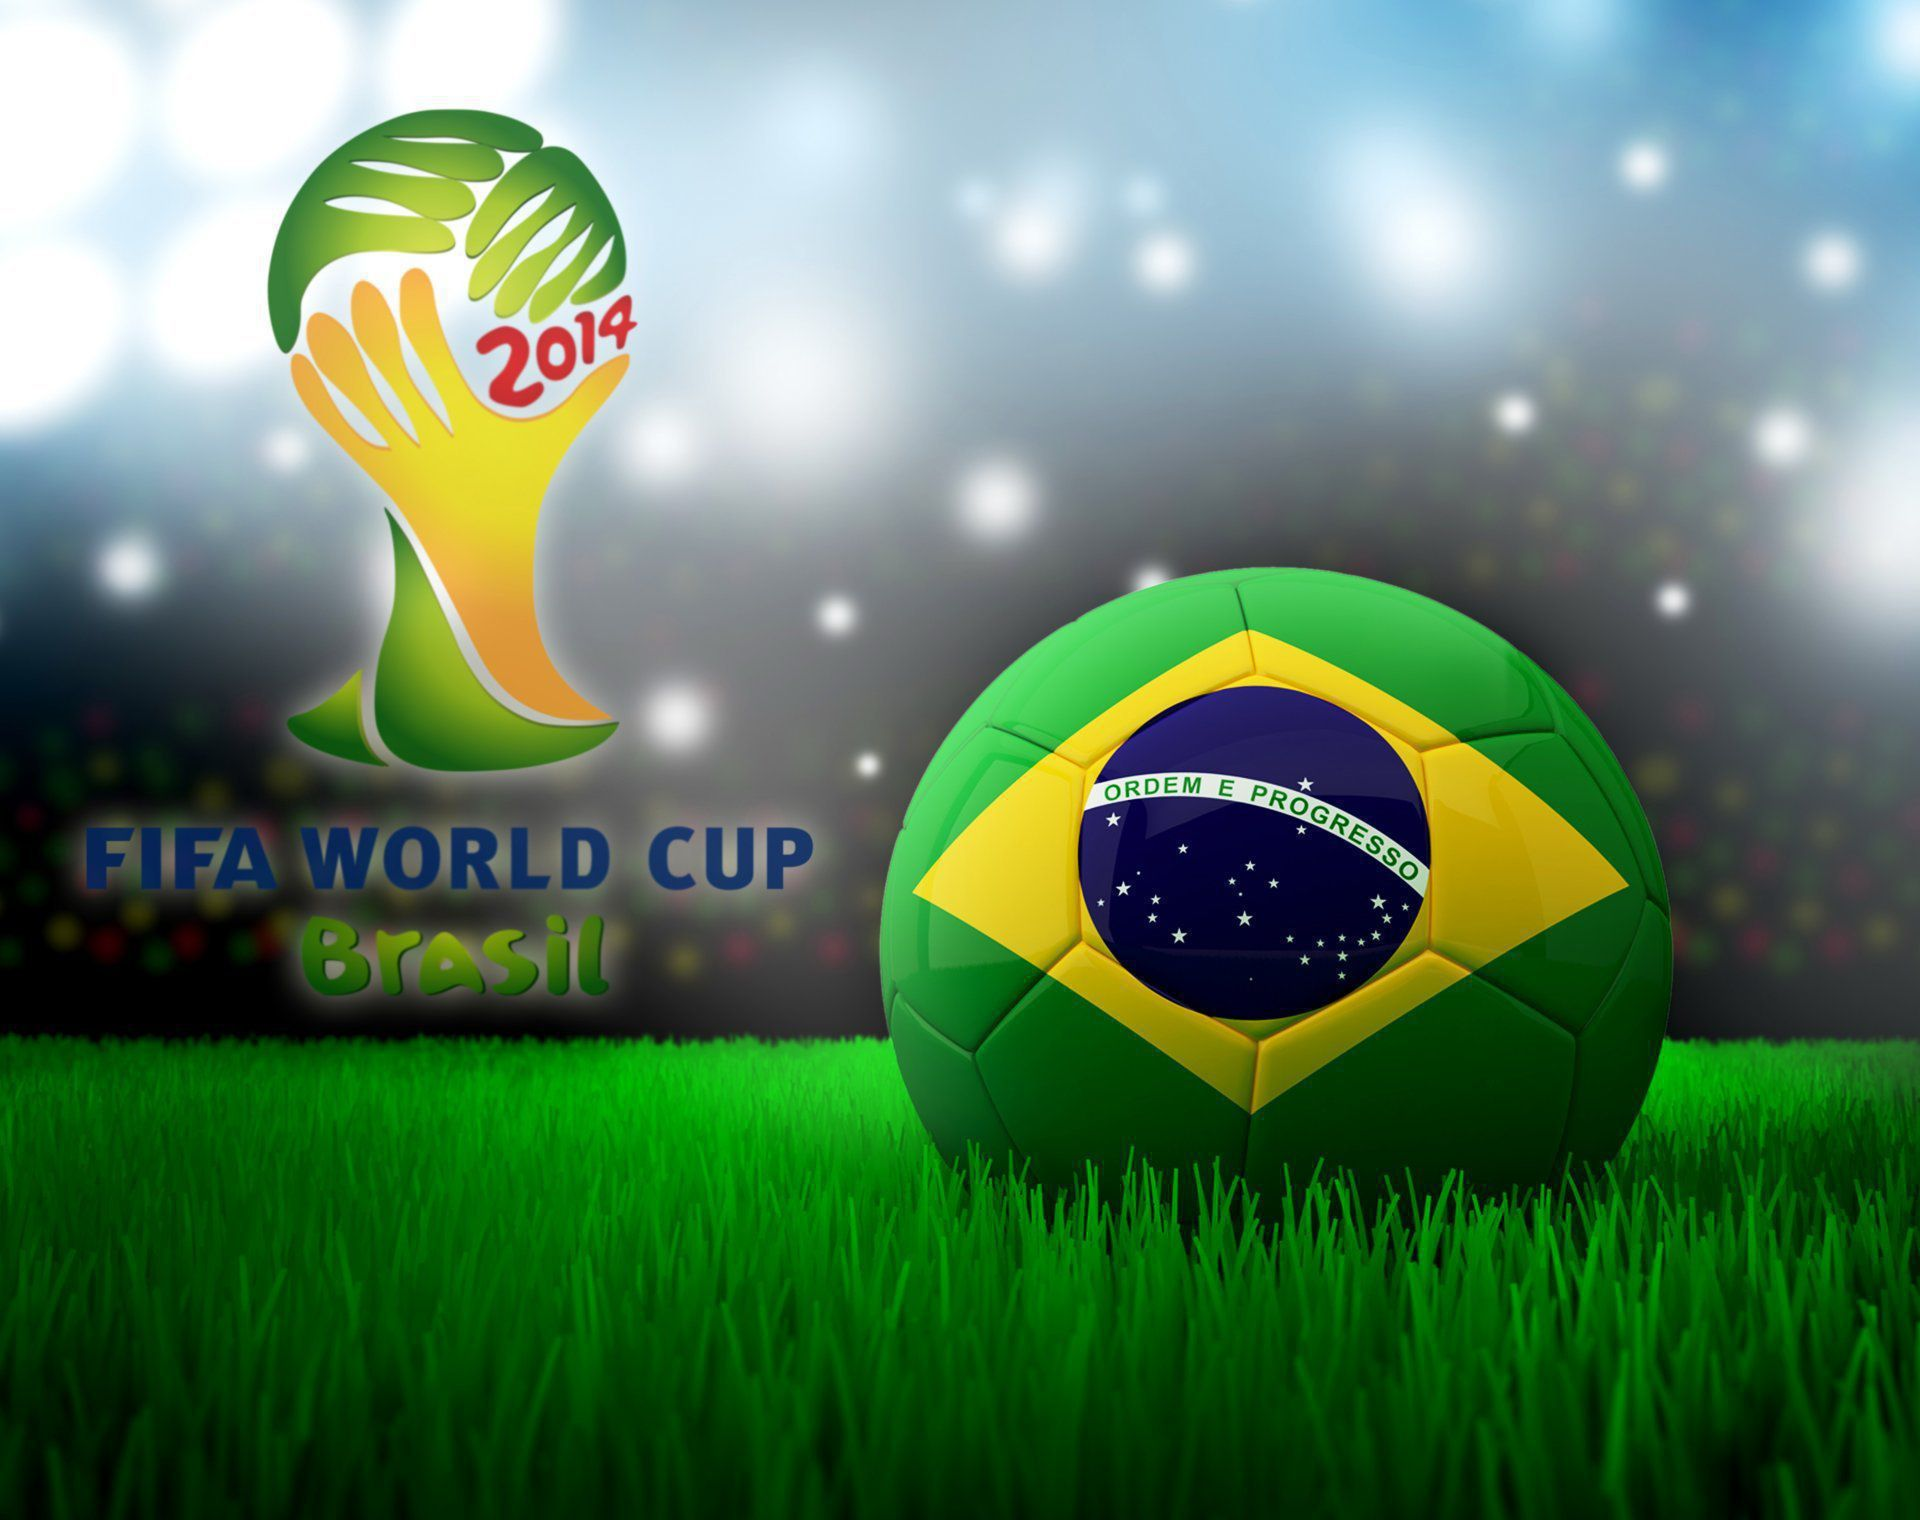 Brazil World Cup 2014 Wallpaper Pack